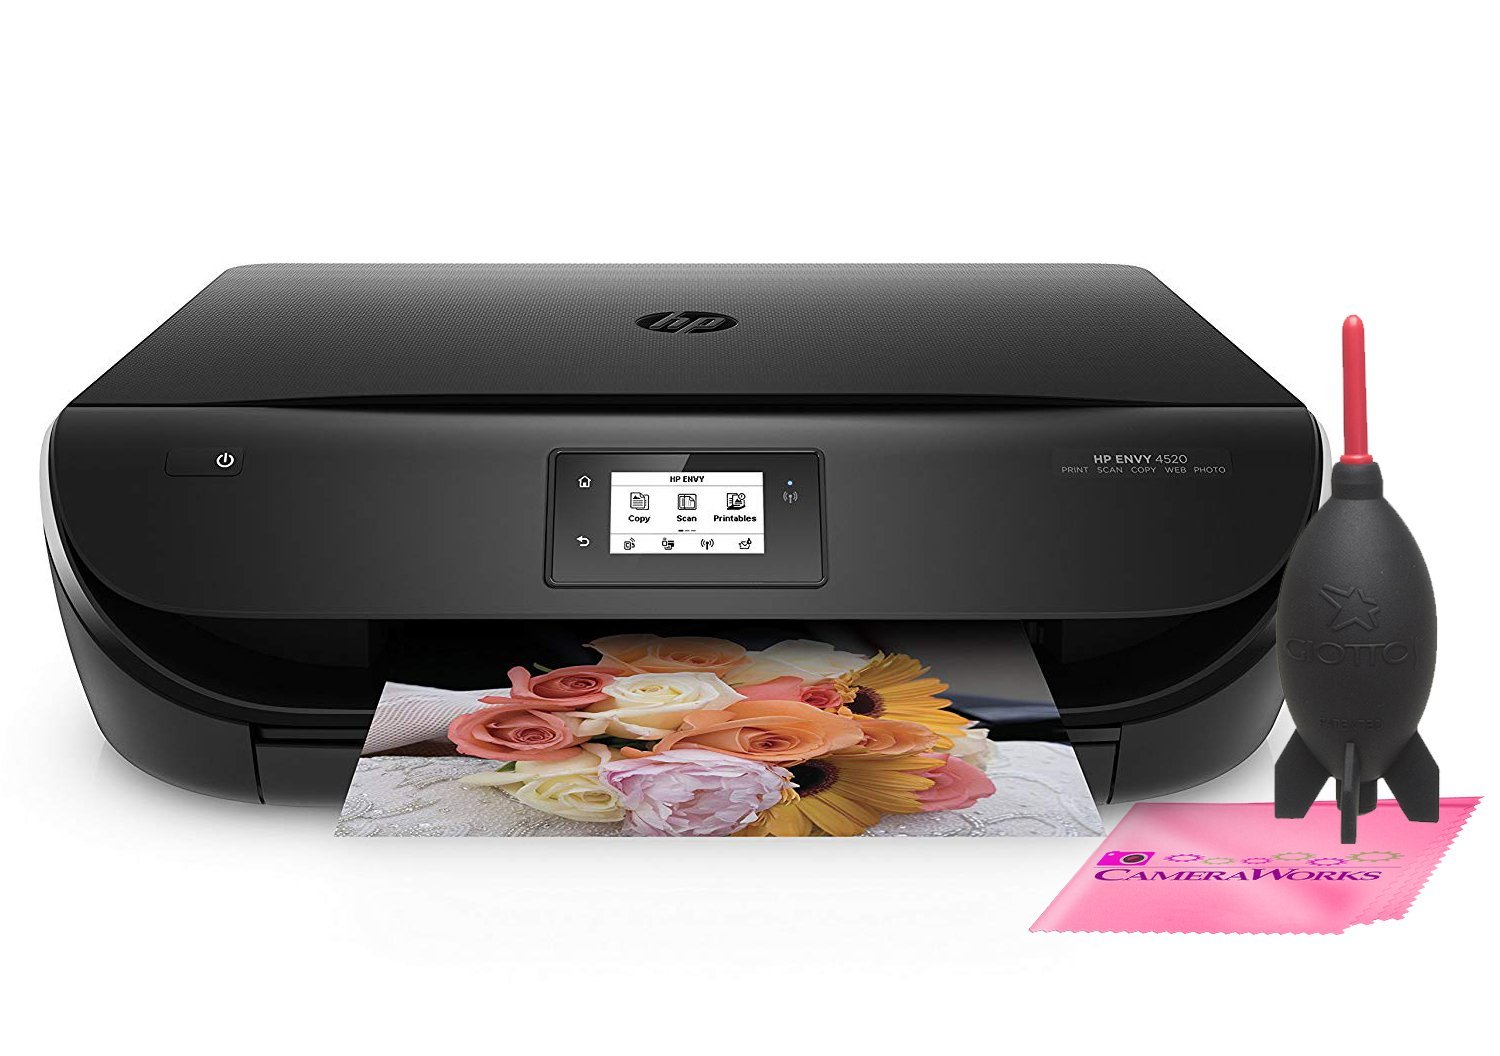 HP ENVY 4520 Wireless All-in-One Photo Printer with Mobile Printing, HP Instant Ink & Amazon Dash Replenishment ready (F0V69A) w/Complimentary Blower System & Microfiber Camera Works Cleaning Cloth